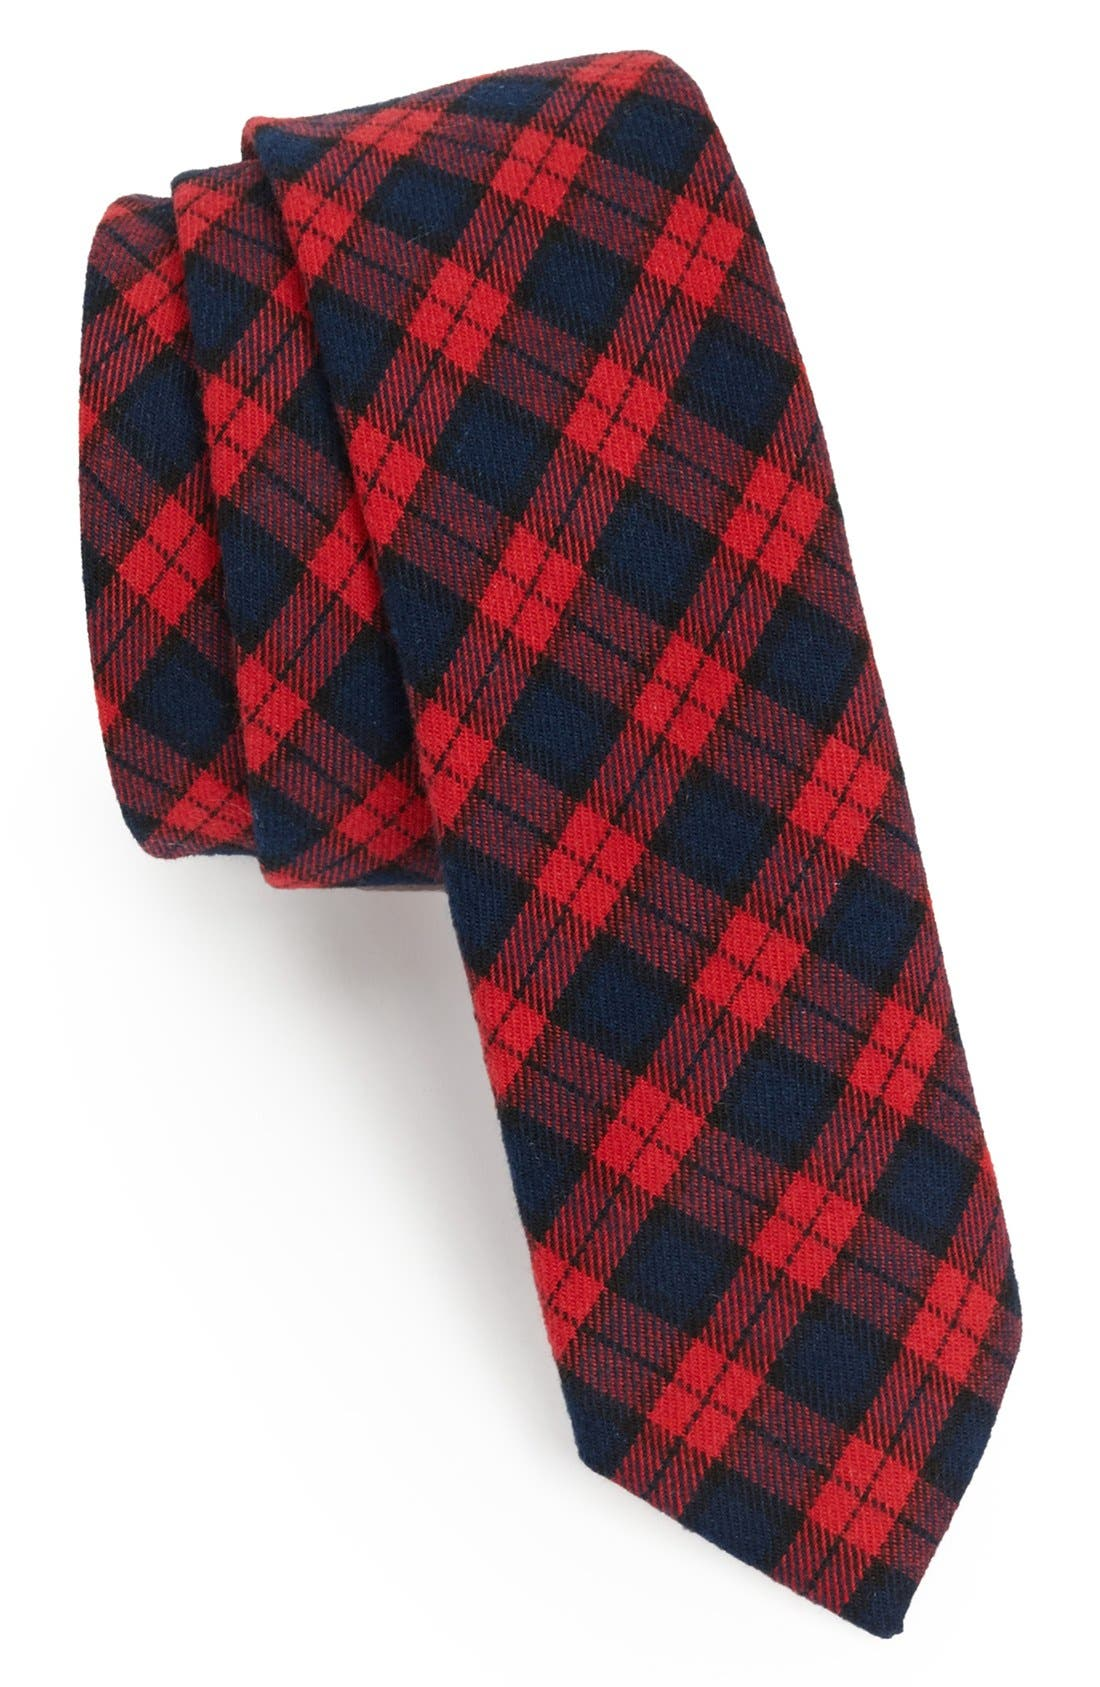 Alternate Image 1 Selected - Original Penguin 'Lars Check' Woven Cotton Tie